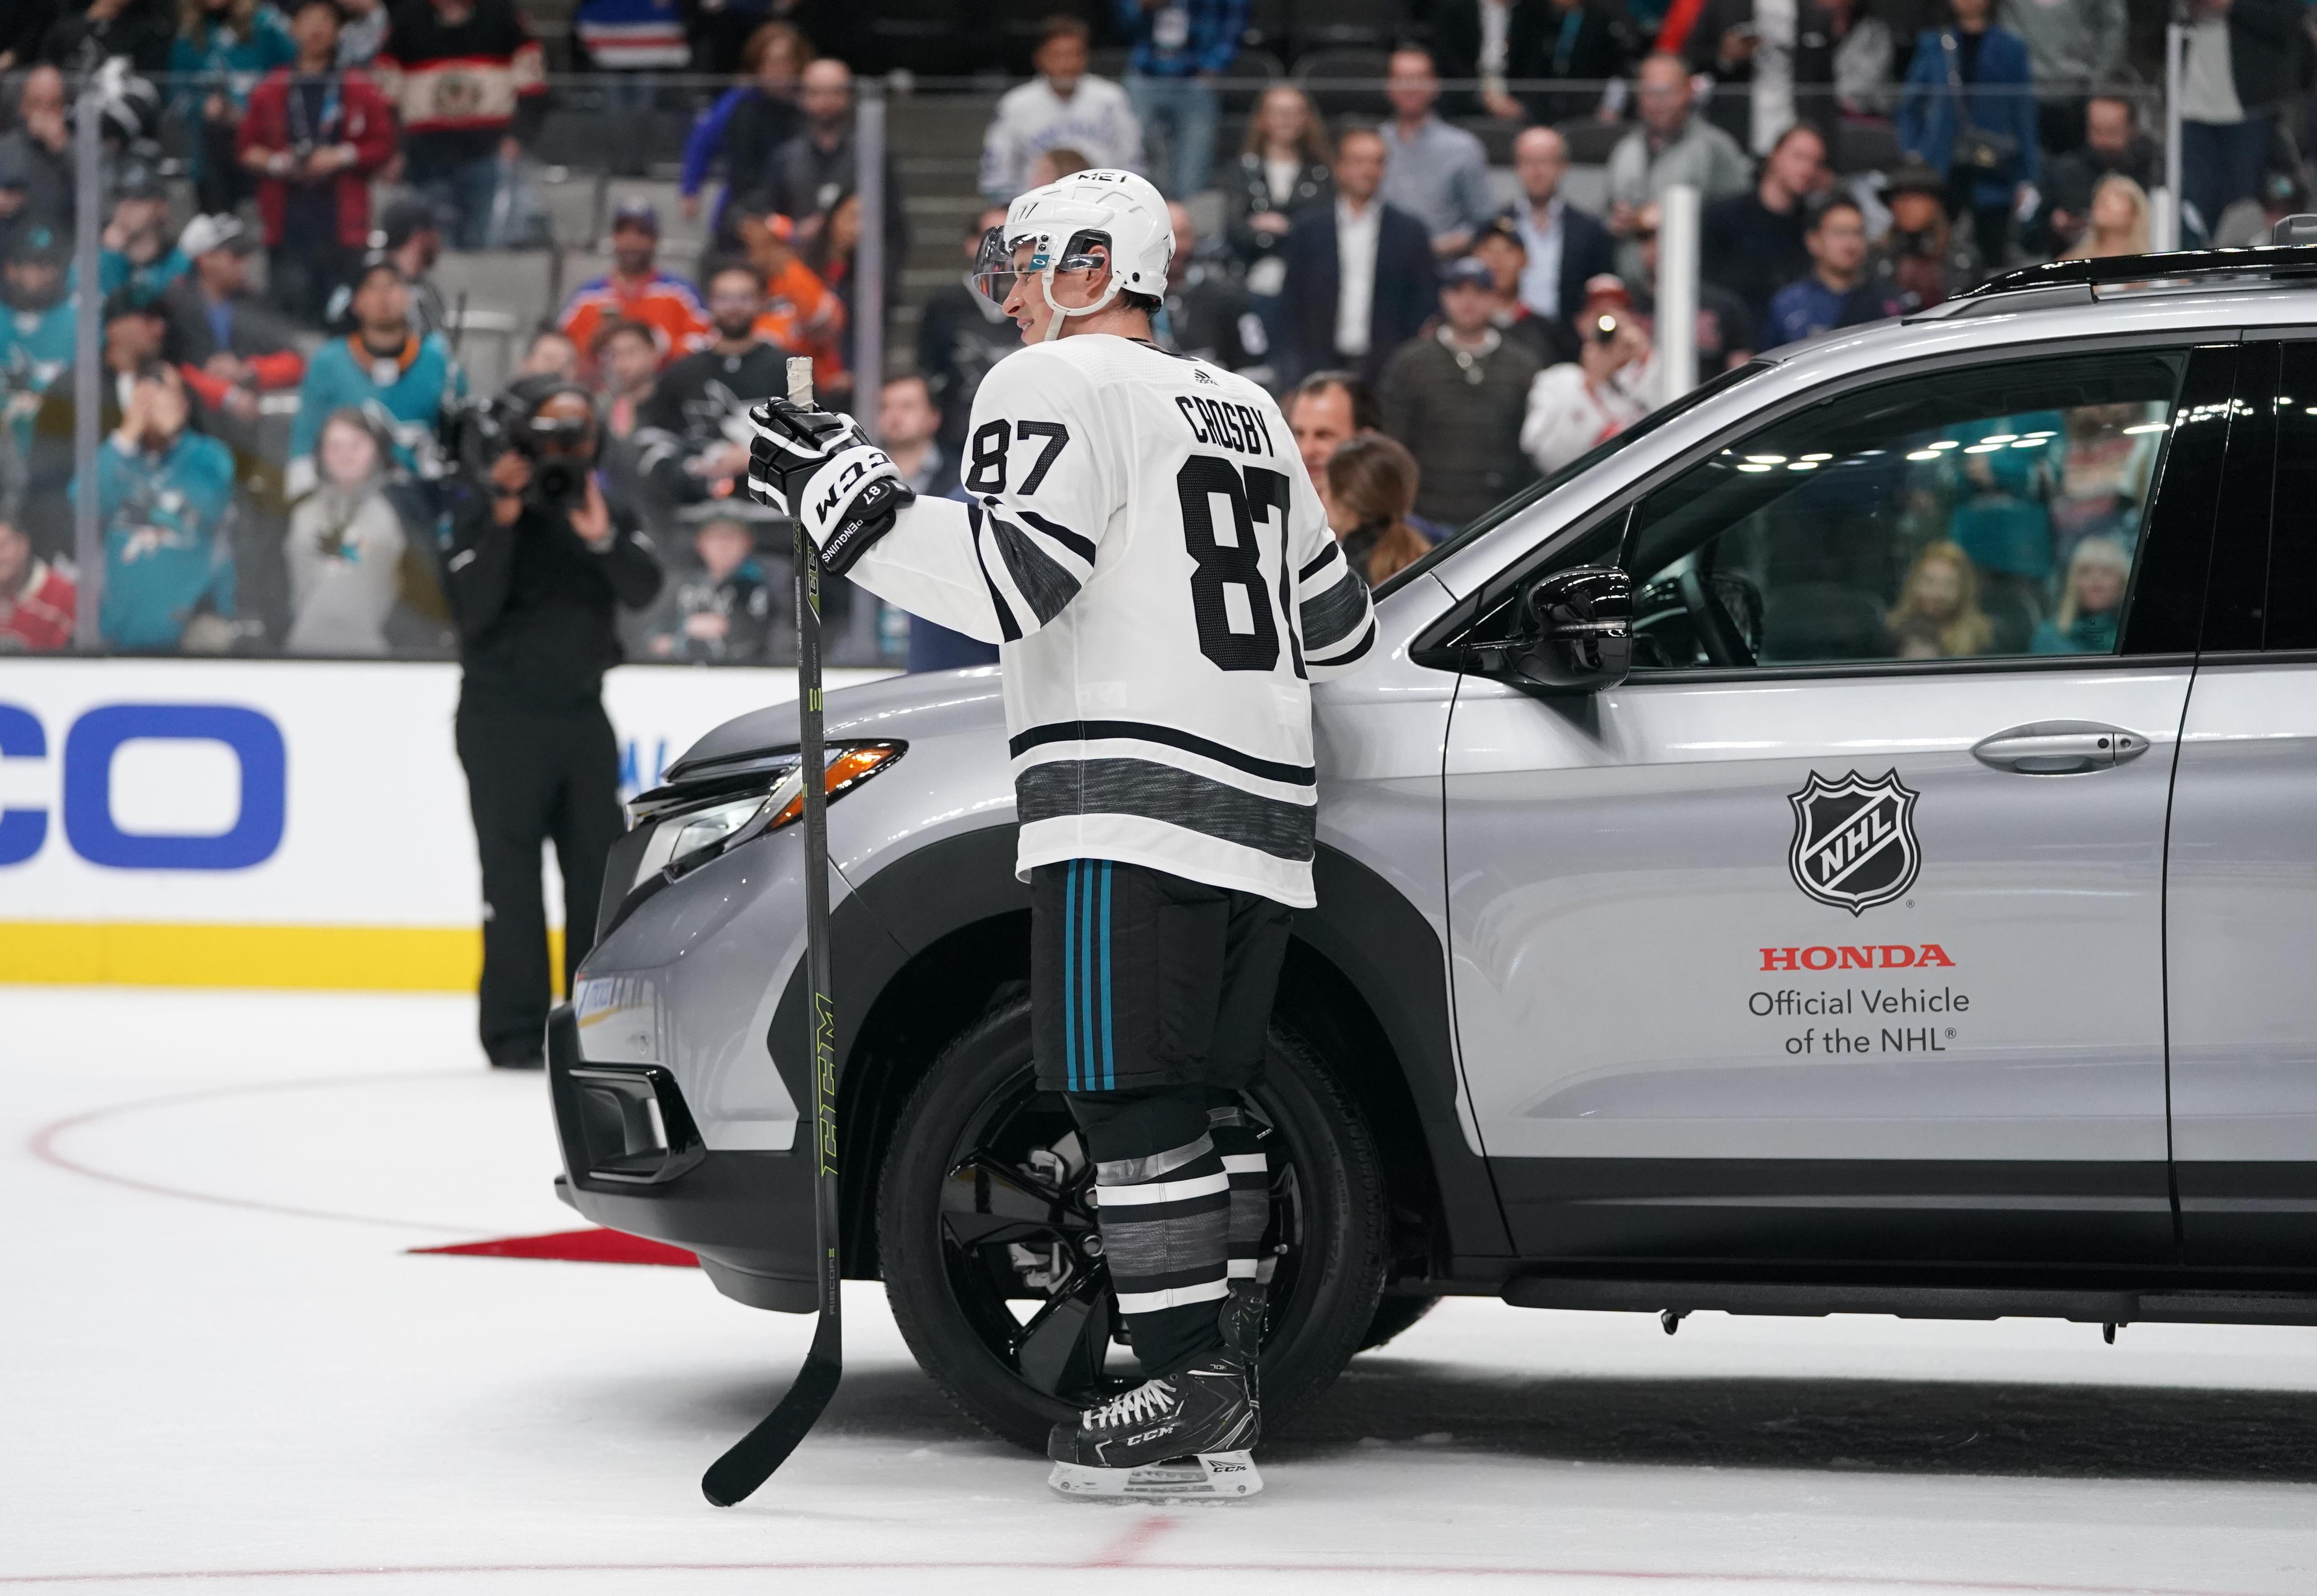 Winners, losers at NHL All-Star weekend: Sidney Crosby adds to trophy haul with big game